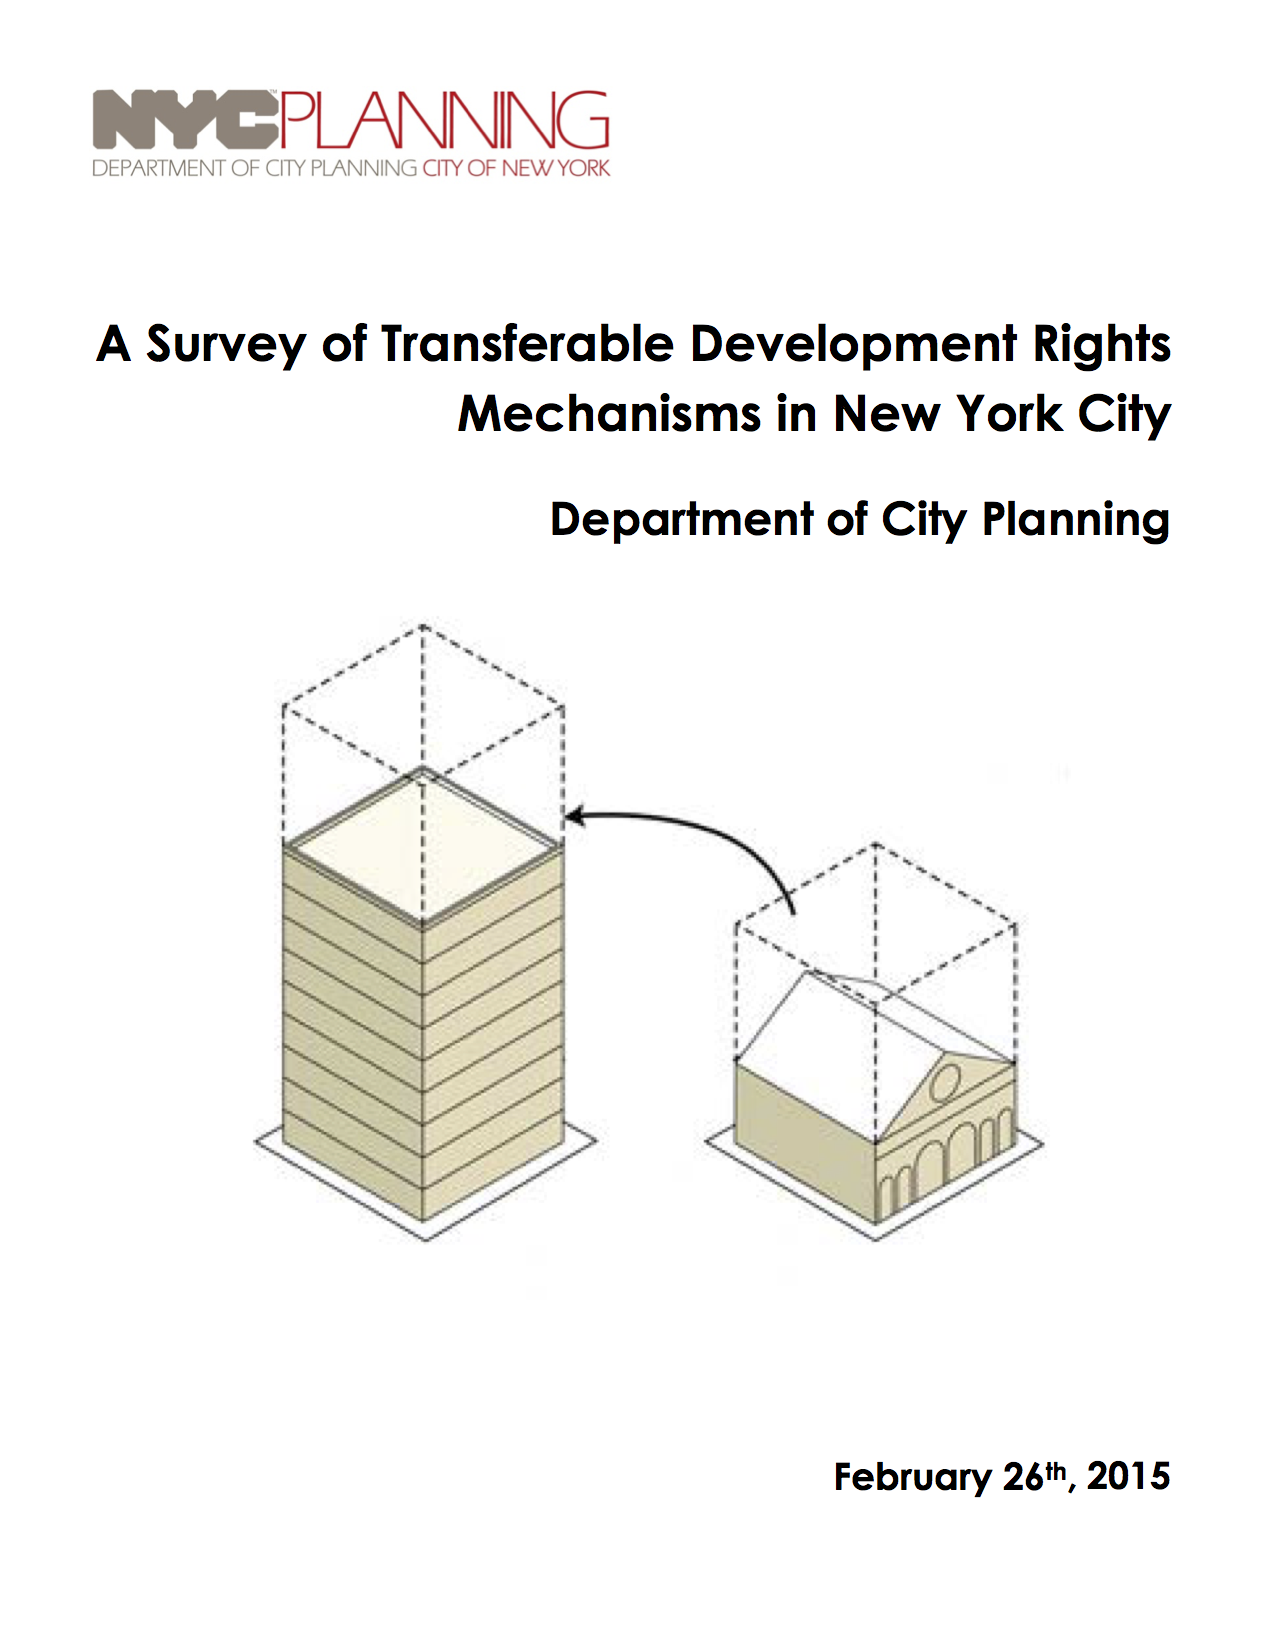 2015-NYC-DCP-A-Survey-of-Transferable-Development-Rights-Mechanisms-in-New-York-City.png